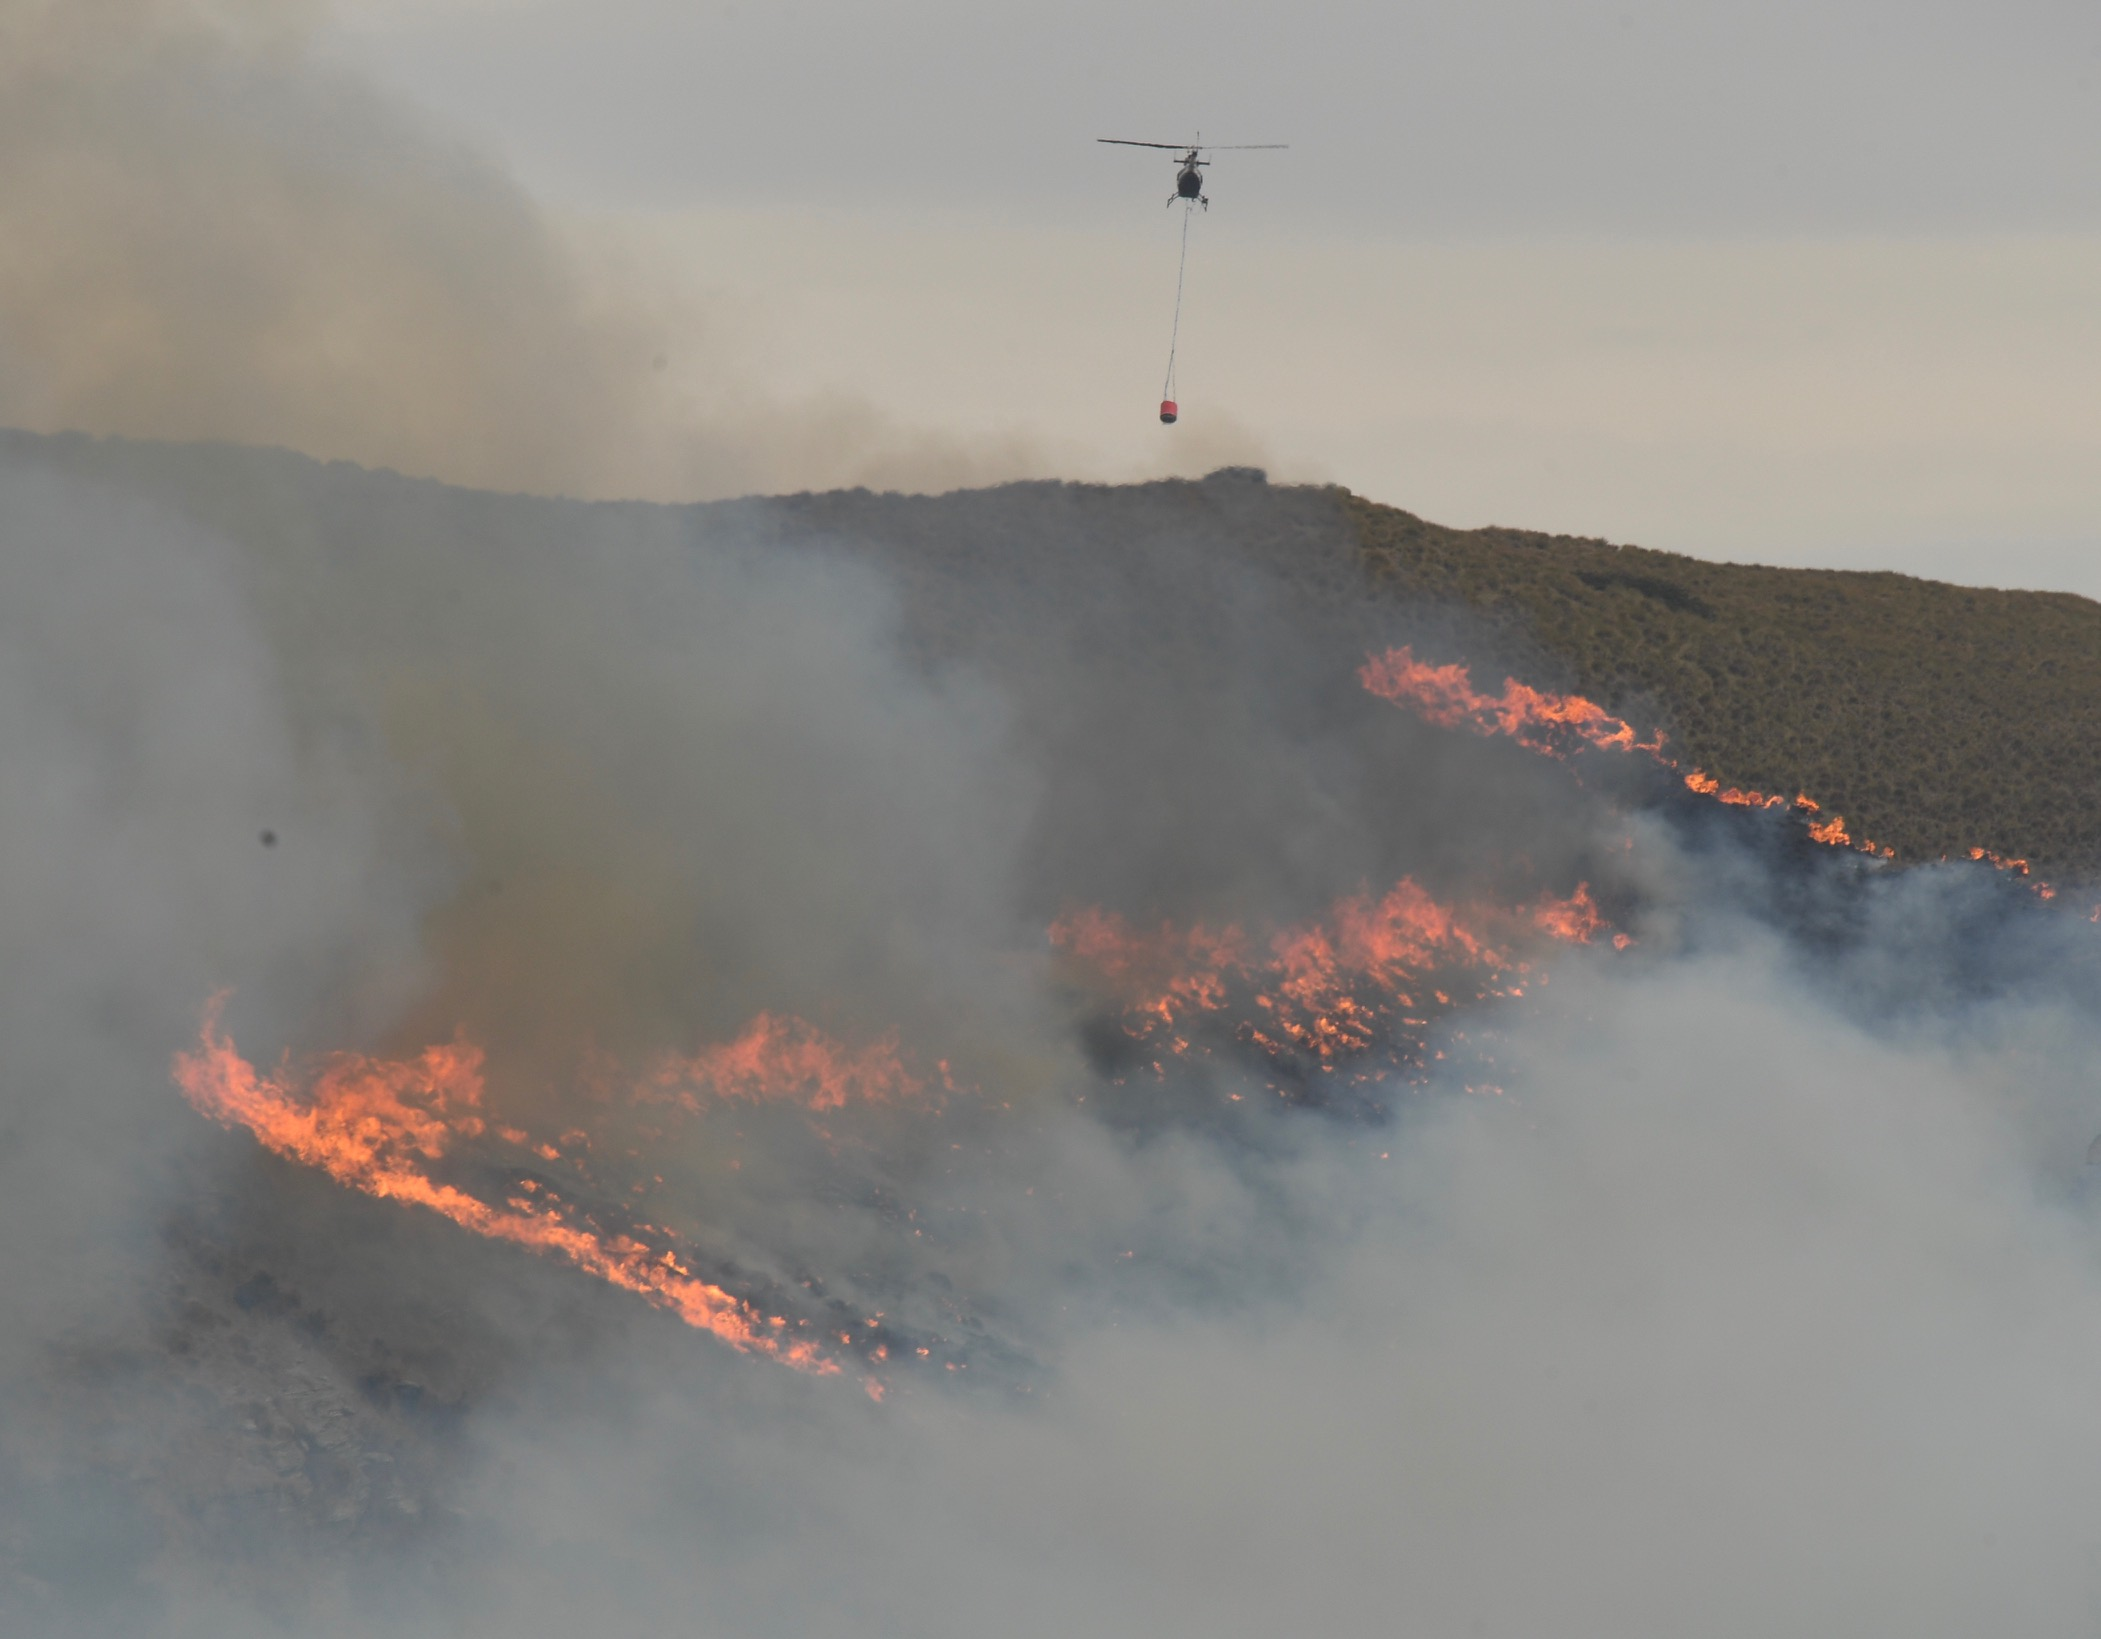 Seven helicopters were battling the fire at one stage. Photo: Stephen Jaquiery